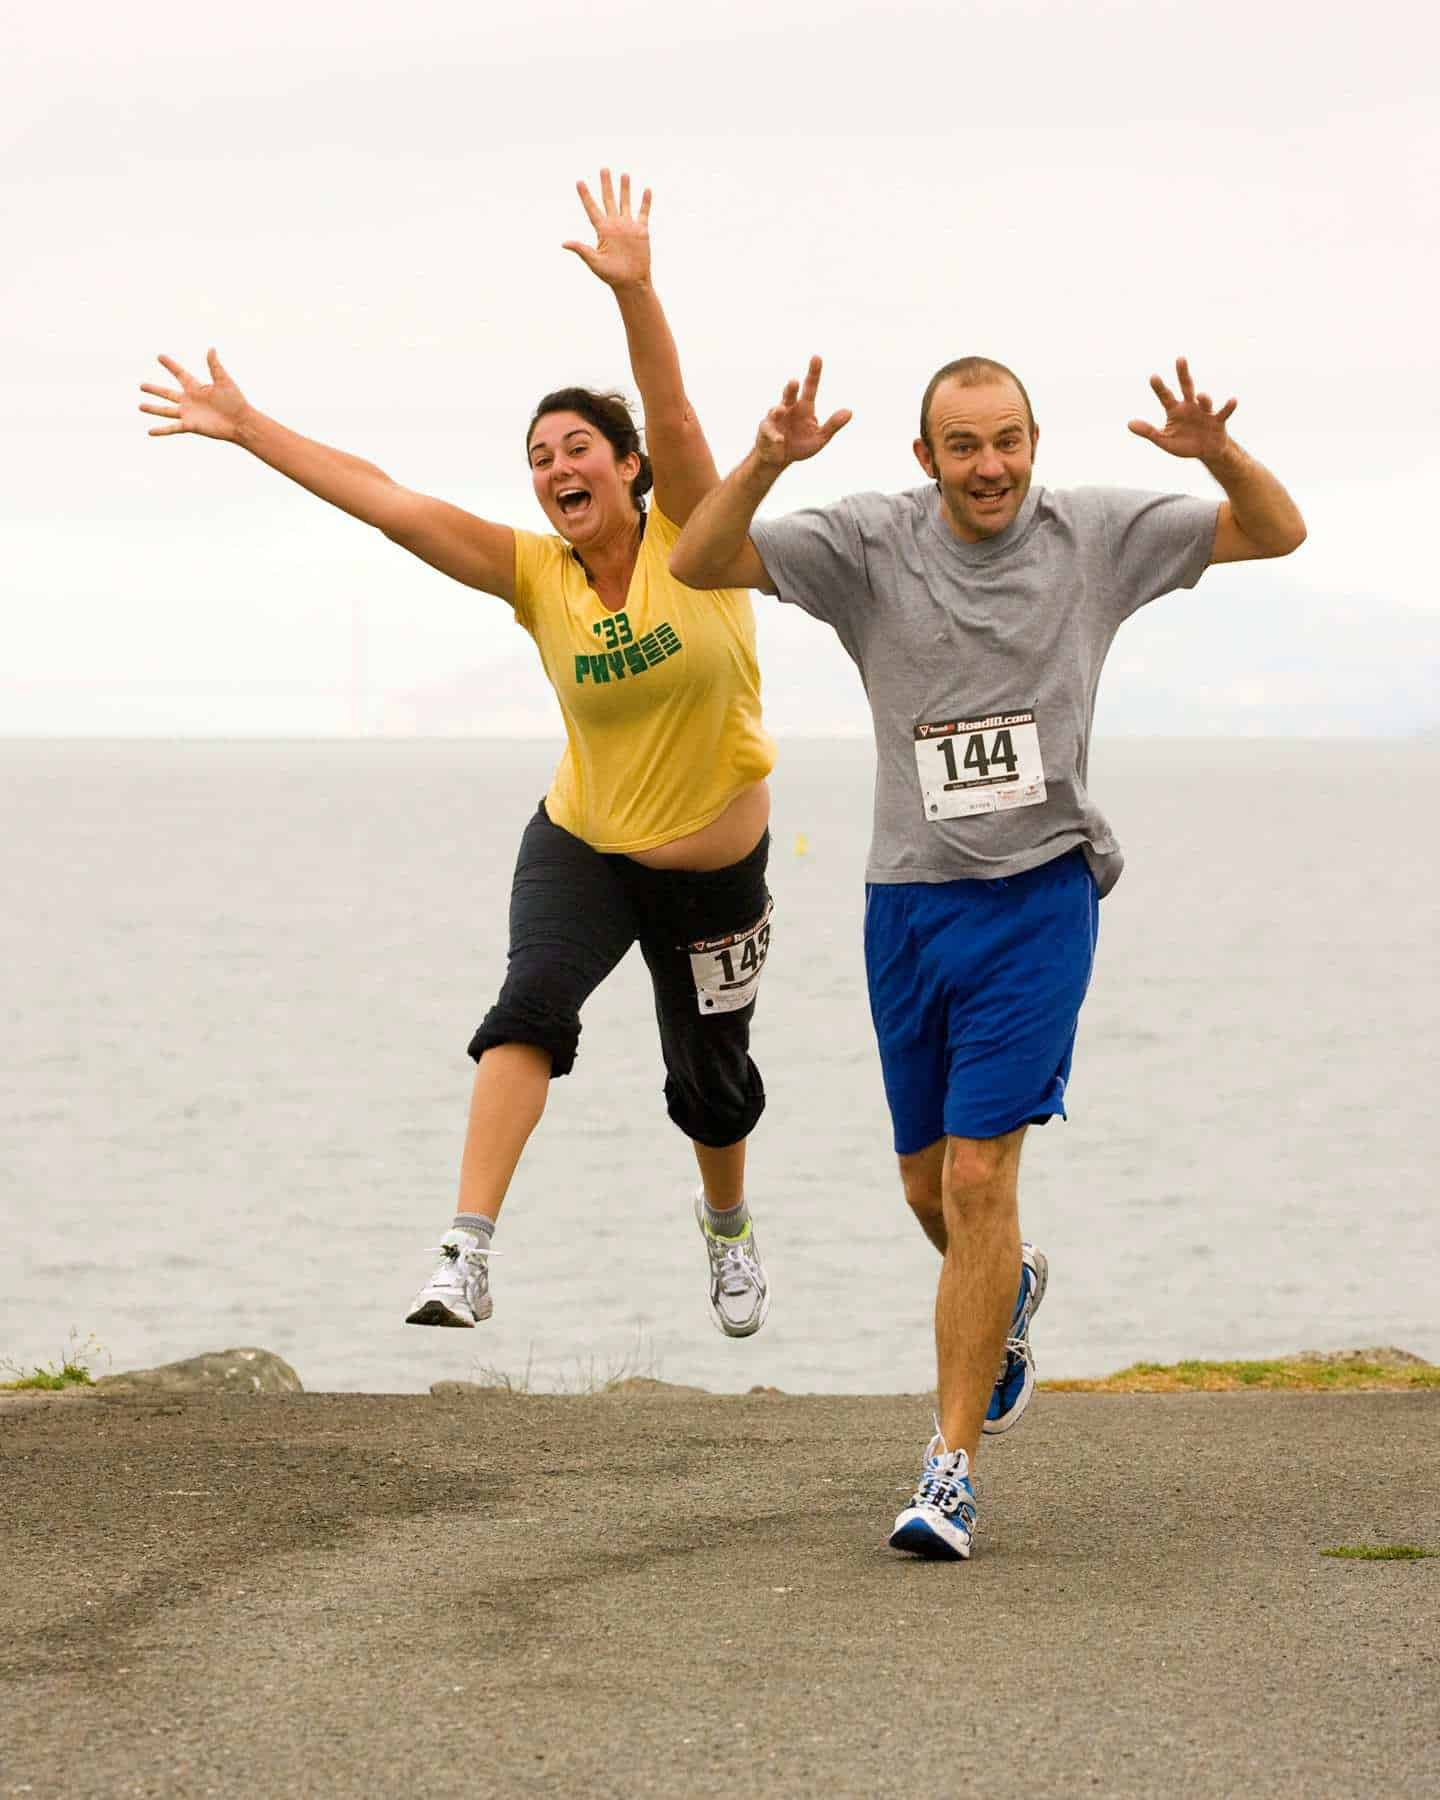 Good luck with your run- don't forget the fun!